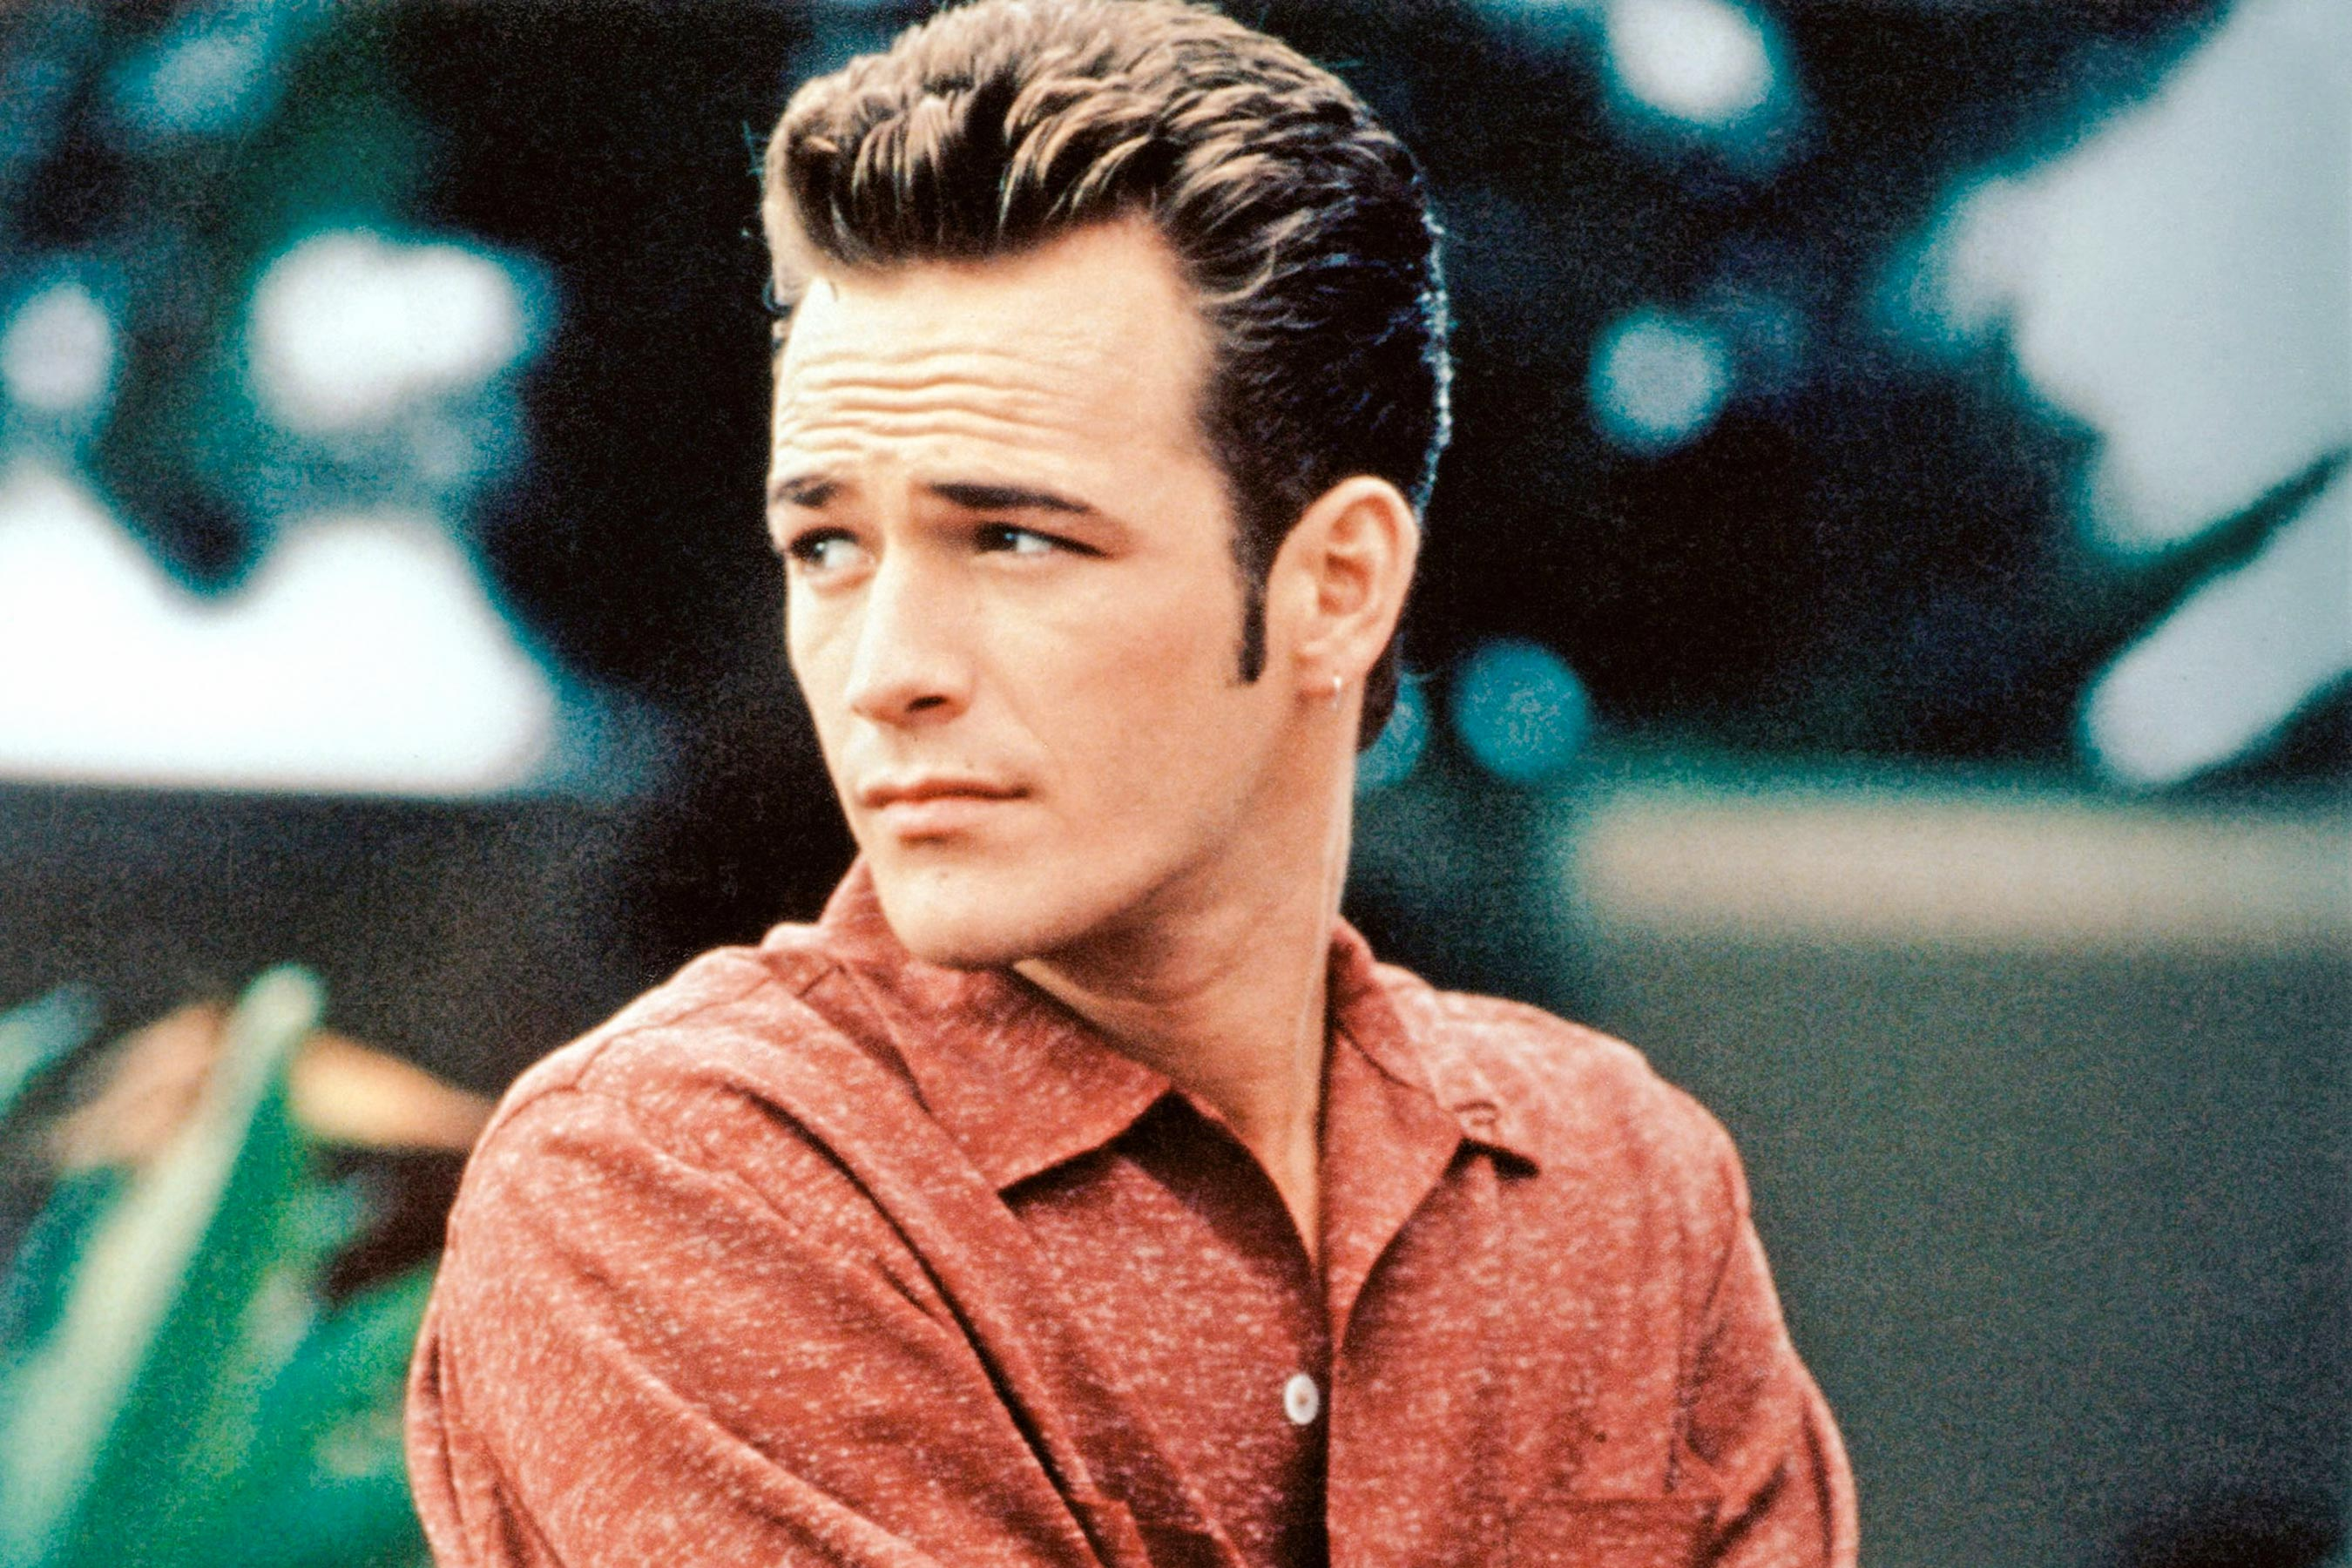 Luke Perry Nationality, Religion, Ethnicity, and Net Worth